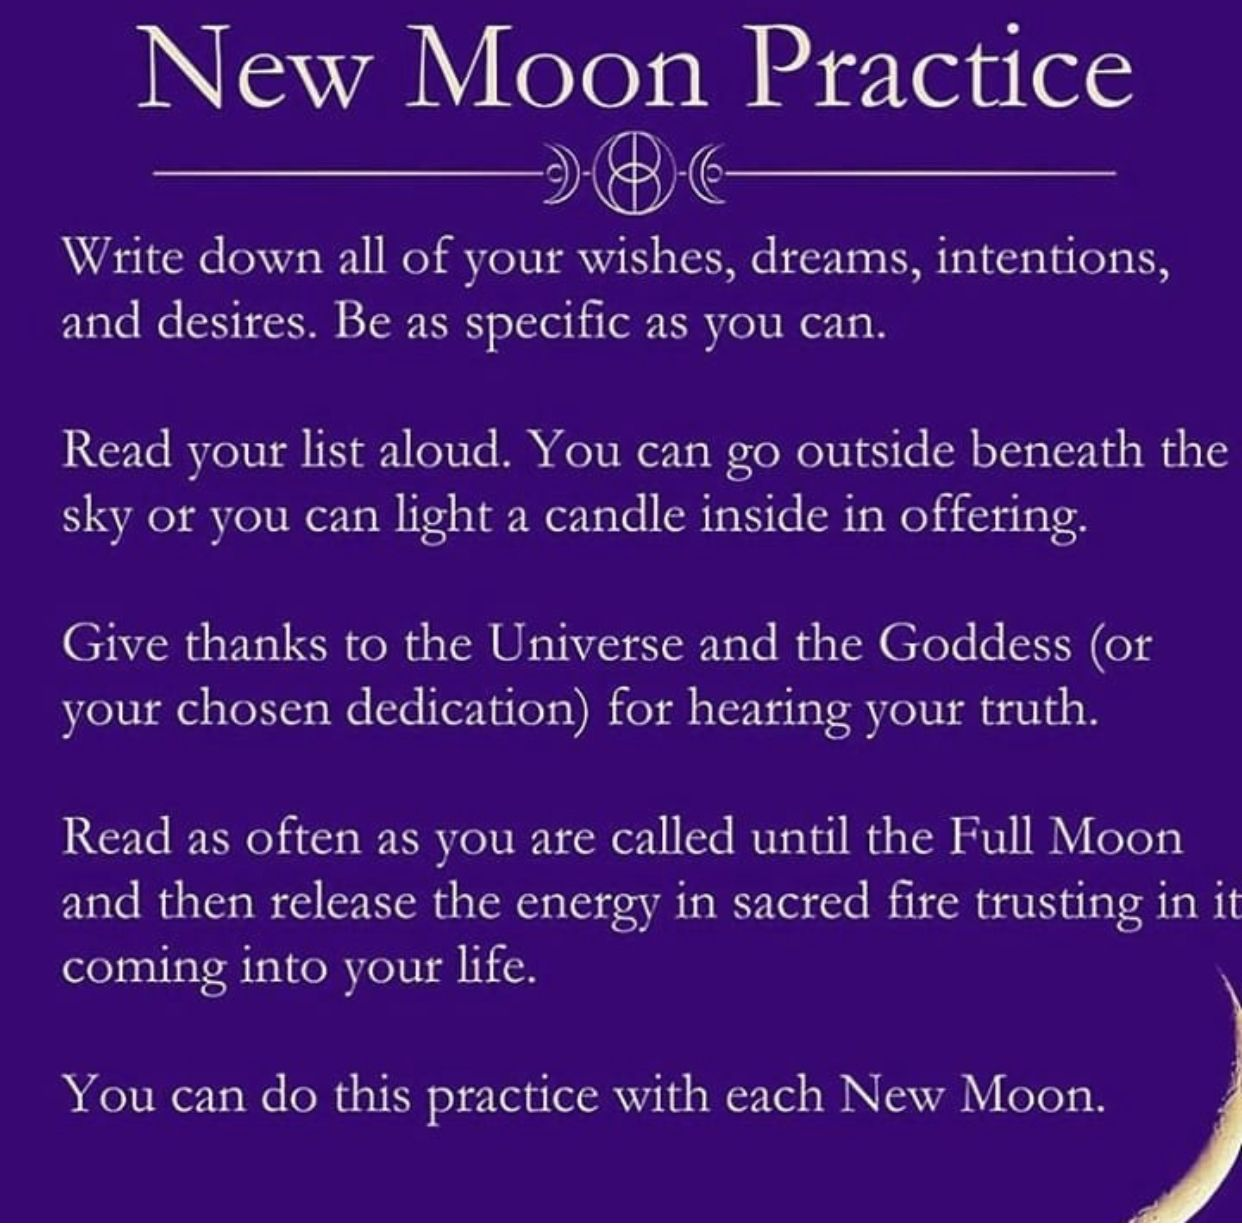 Dreams #newmoonritual